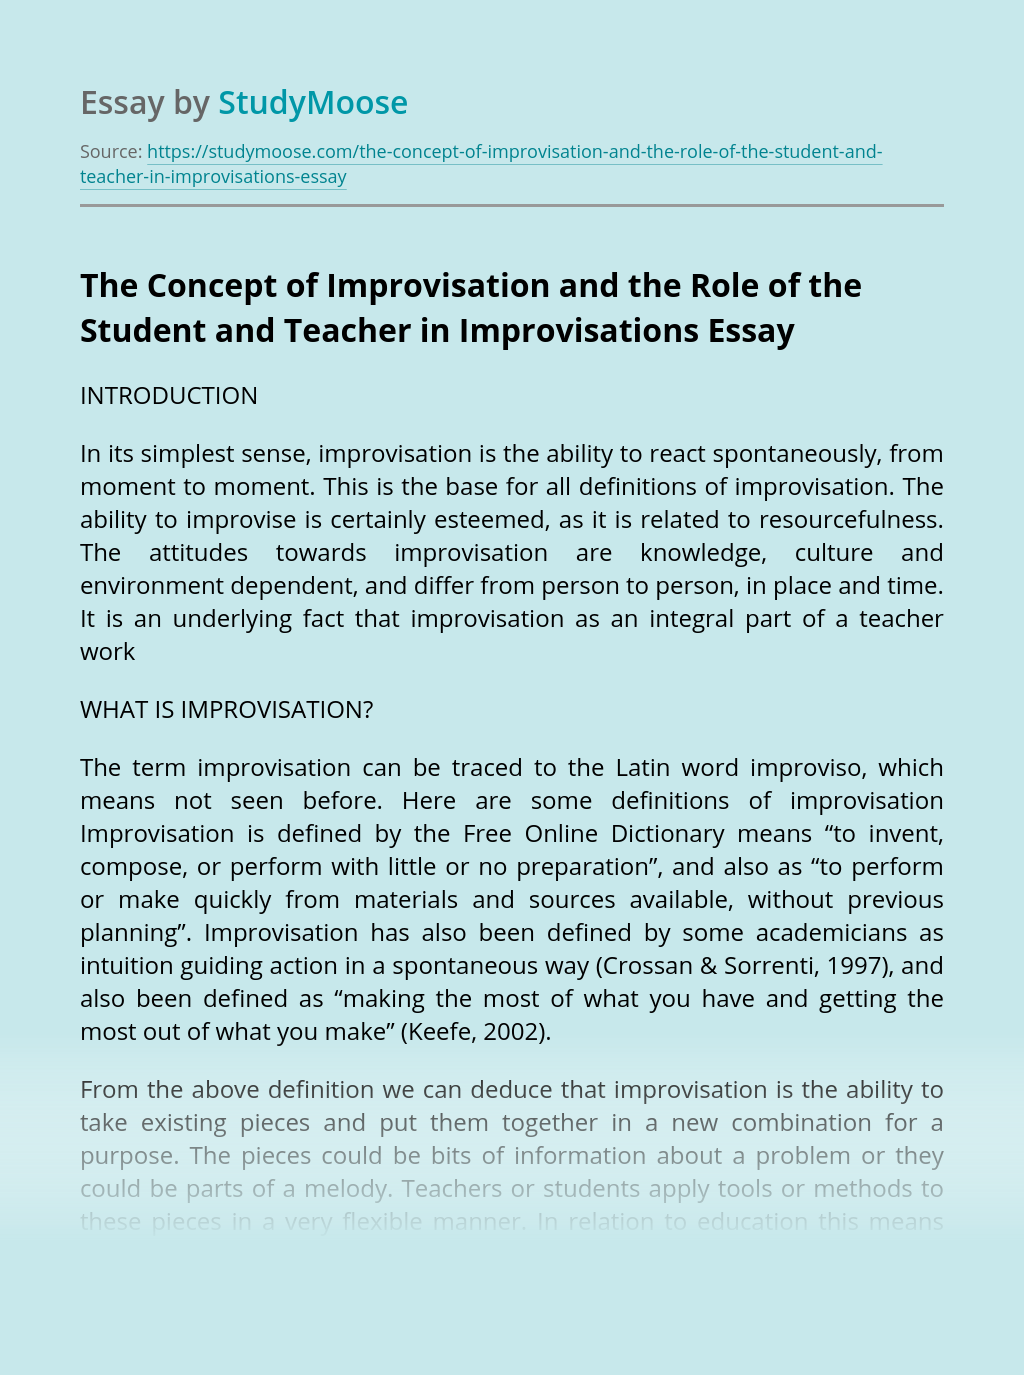 The Concept of Improvisation and the Role of the Student and Teacher in Improvisations